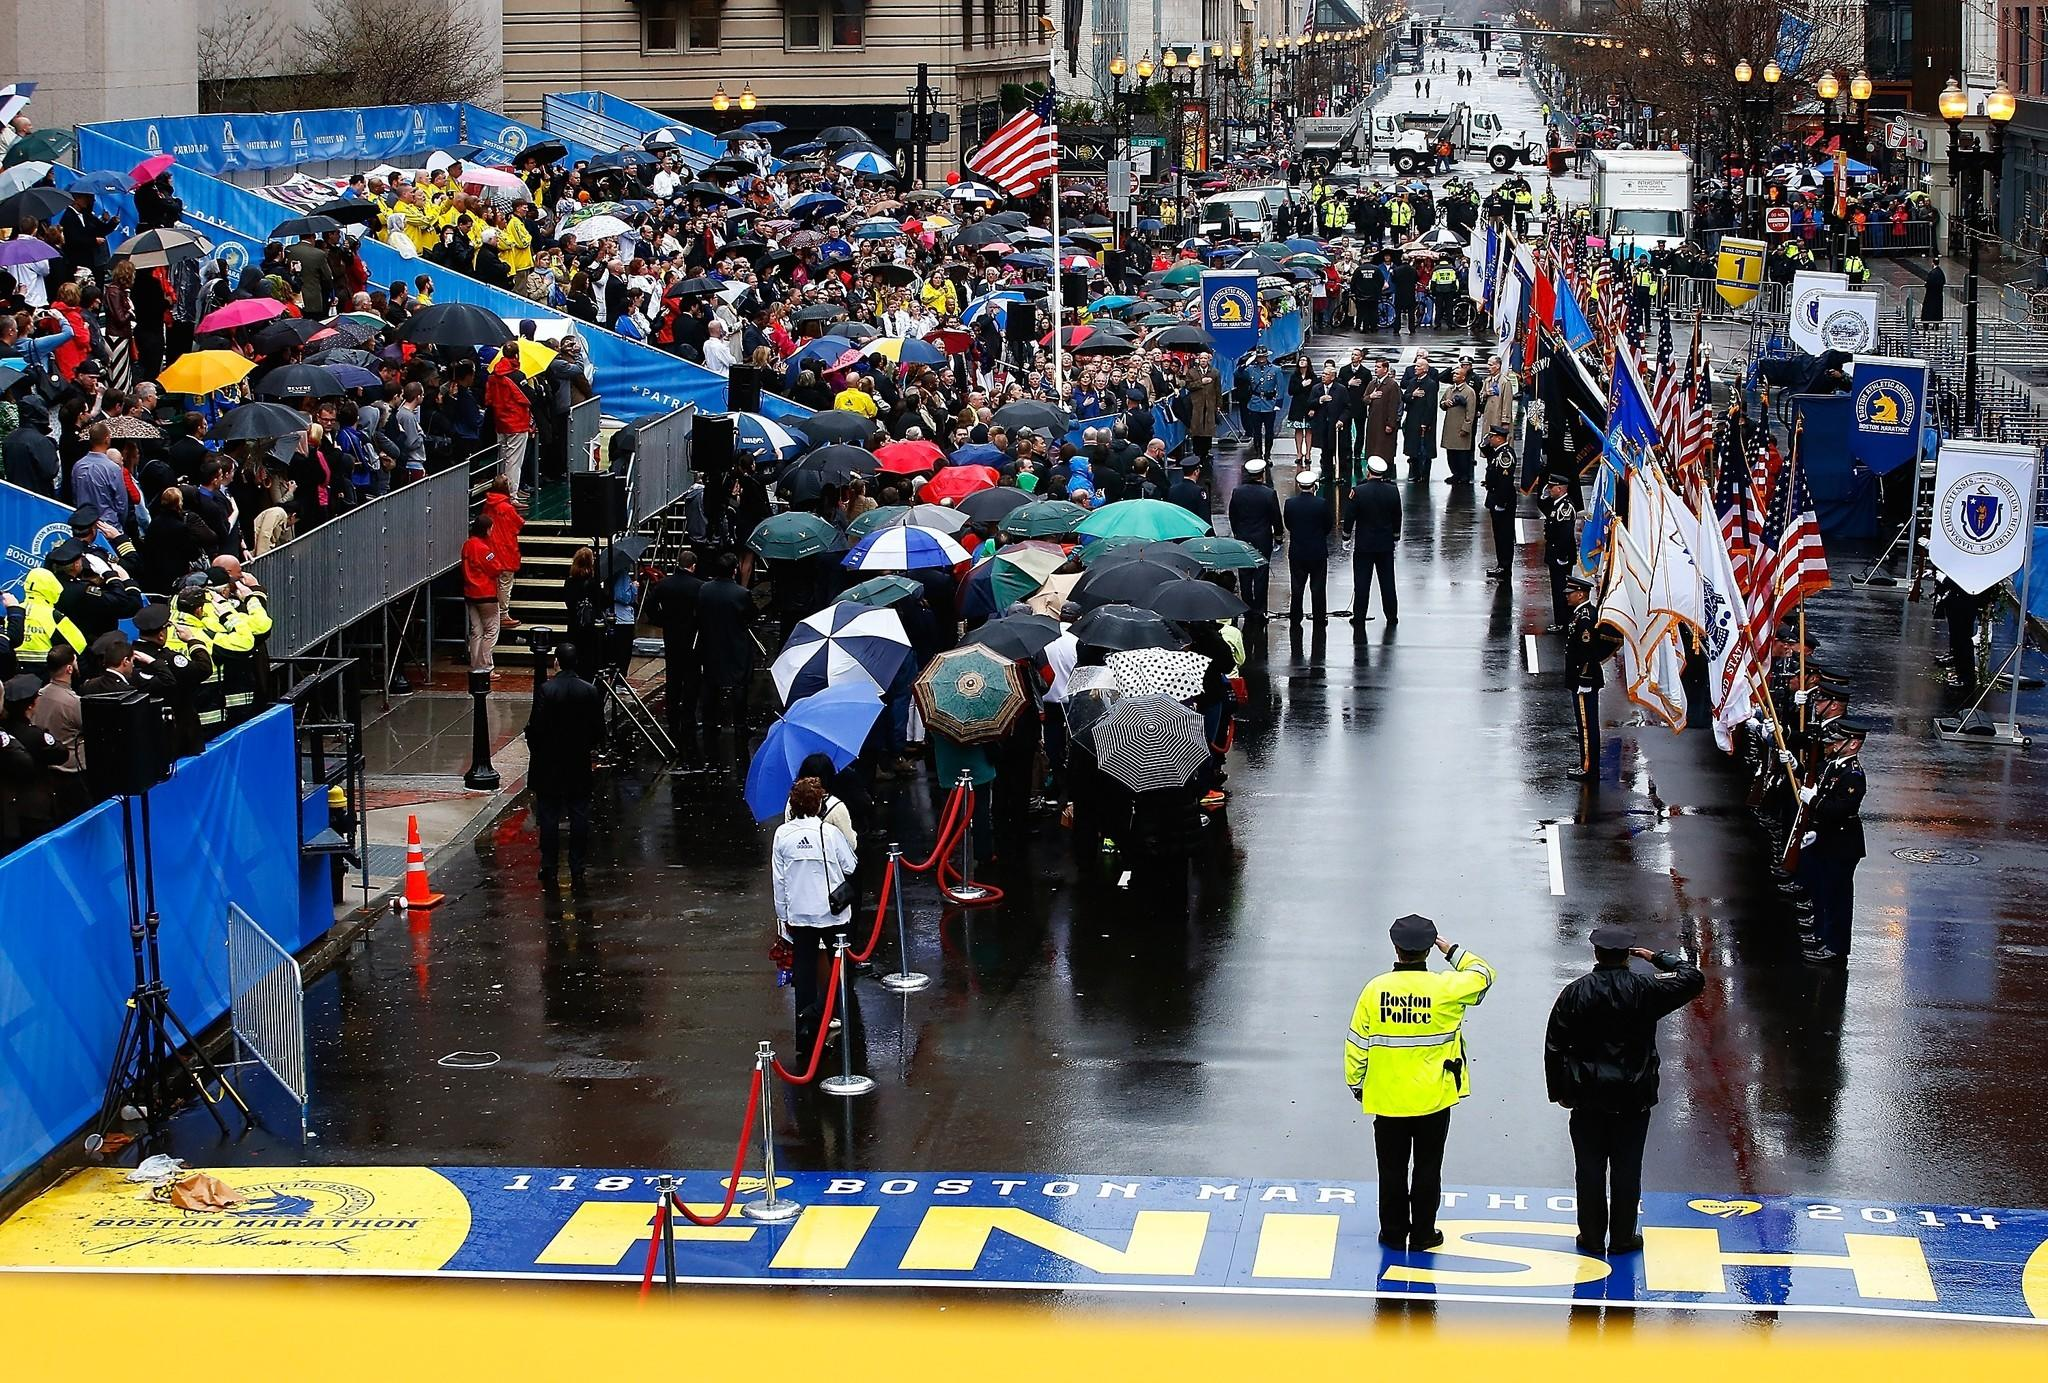 Former Boston Mayor Thomas Menino, current Mayor Martin Walsh, Vice President Joe Biden and Gov. Deval Patrick were among those who gathered to commemorate the first anniversary of the Boston Marathon bombings near the finish line on Boylston Street.